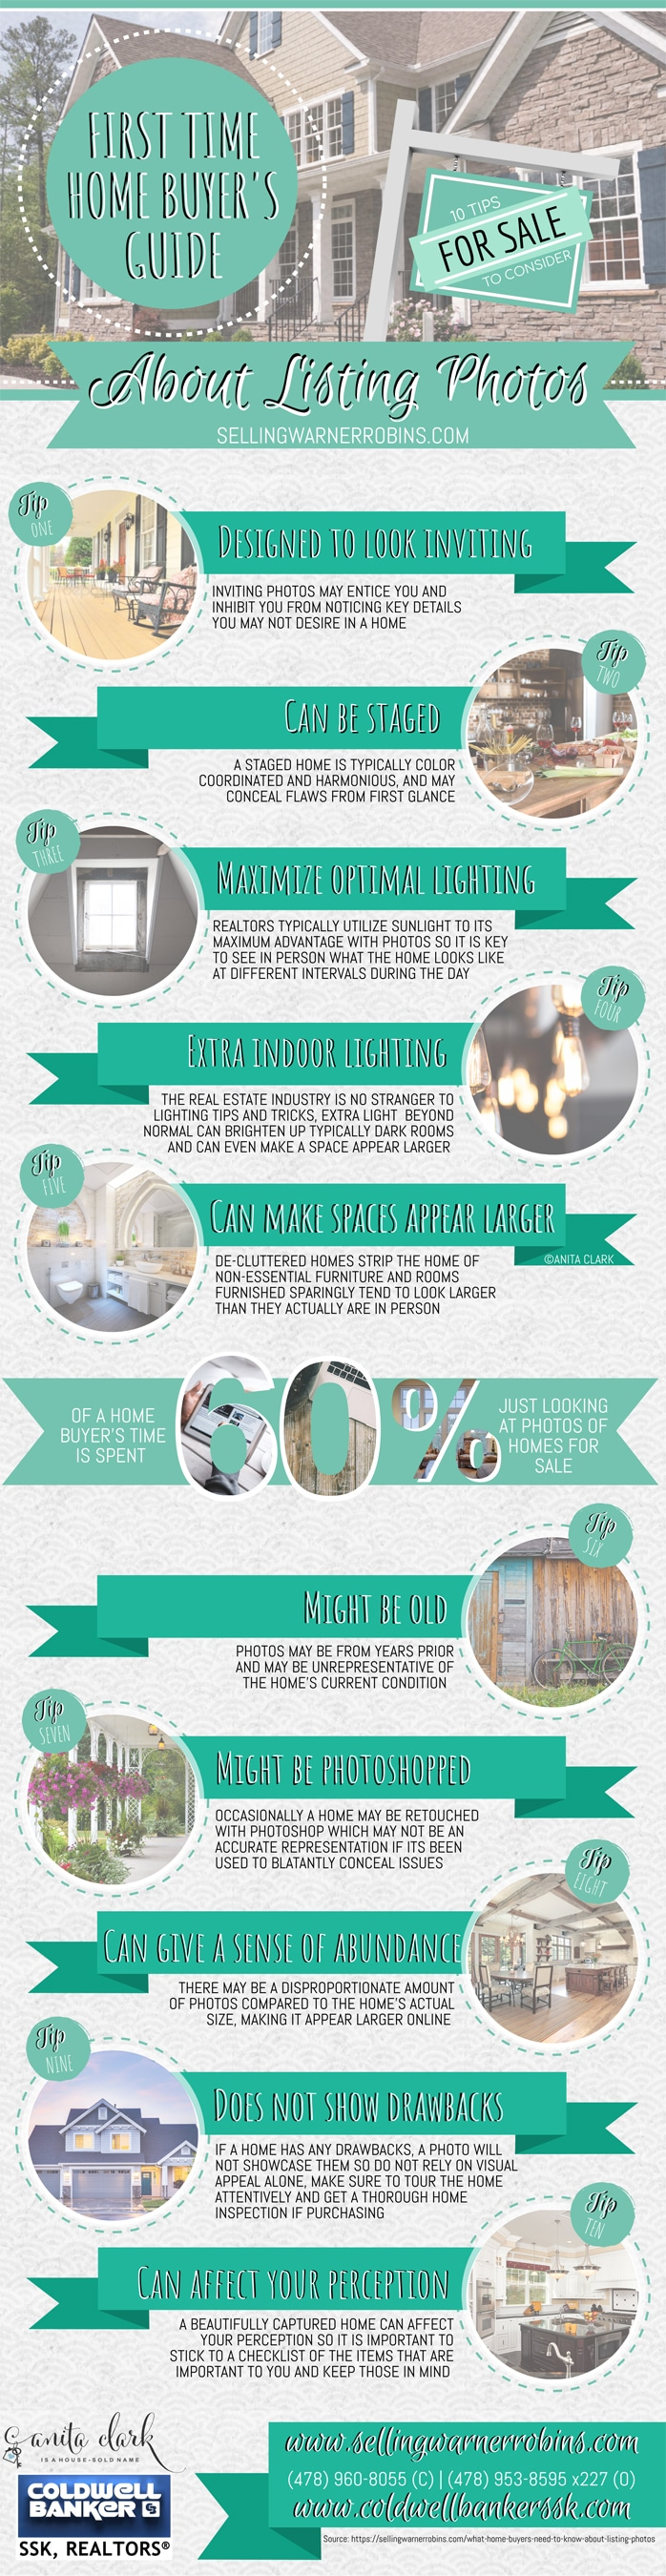 First Time Home Buyers Guide to Listing Photos